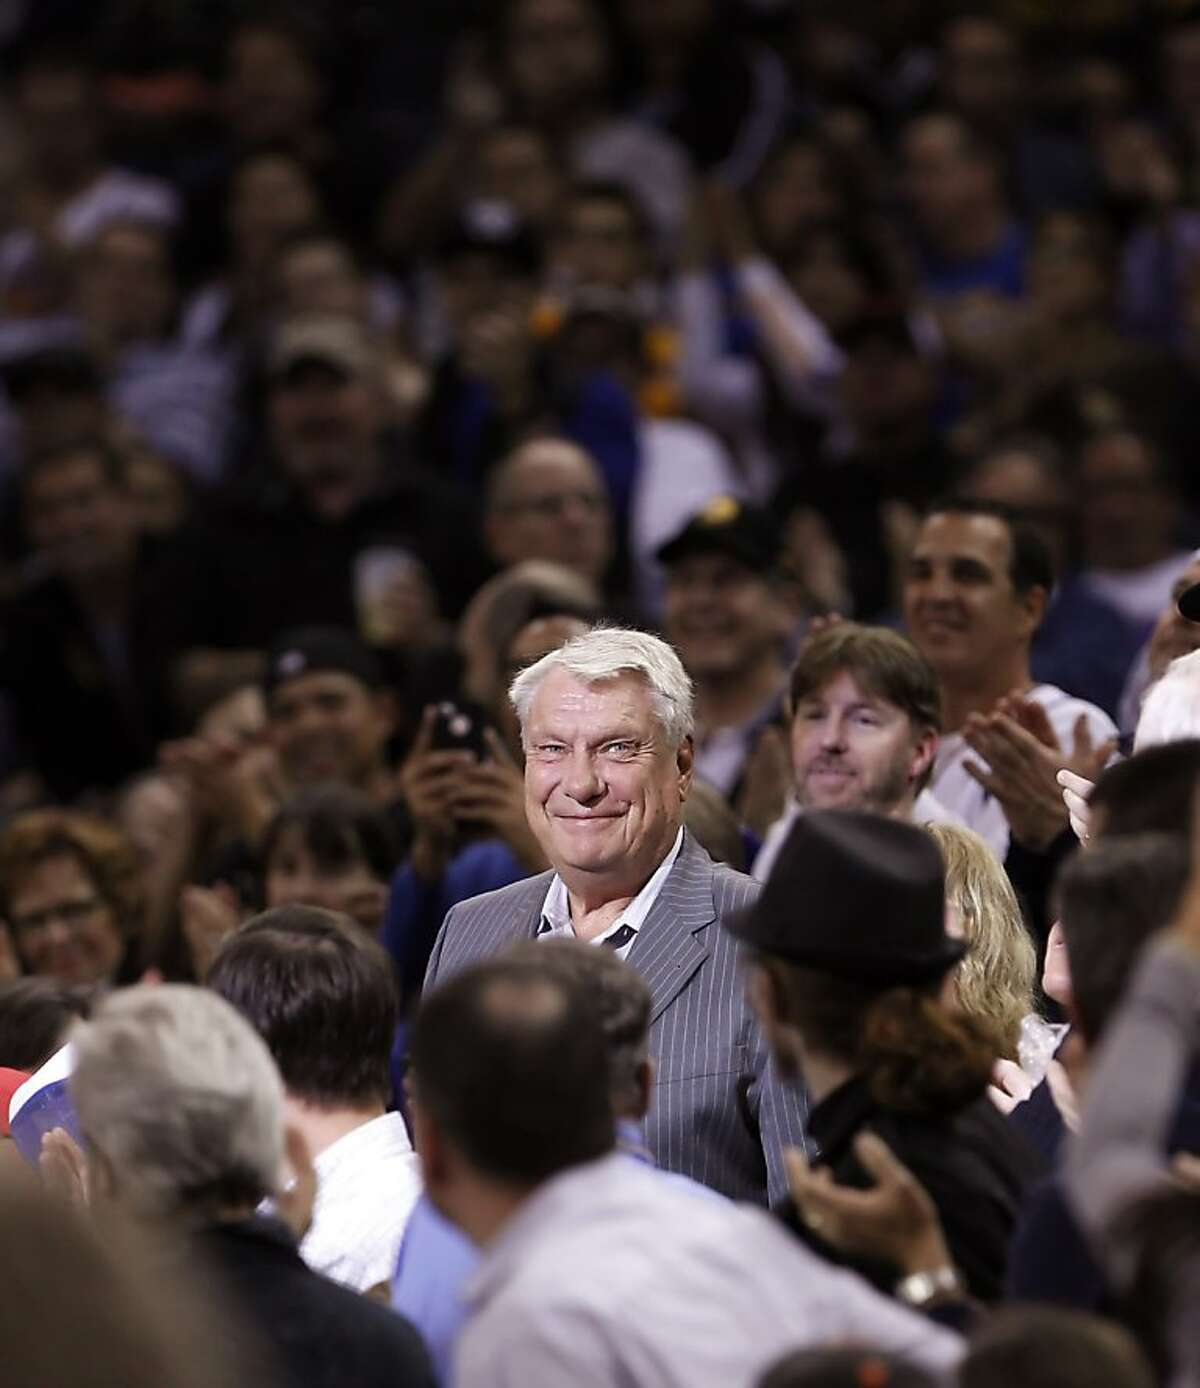 Warriors and Hall of Fame coach Don Nelson smiles as he is introduced in pre-game ceremonies before the Golden State Warriors played the Atlanta Hawks at Oracle Arena in Oakland, Calif., on Wednesday, November 14, 2012.